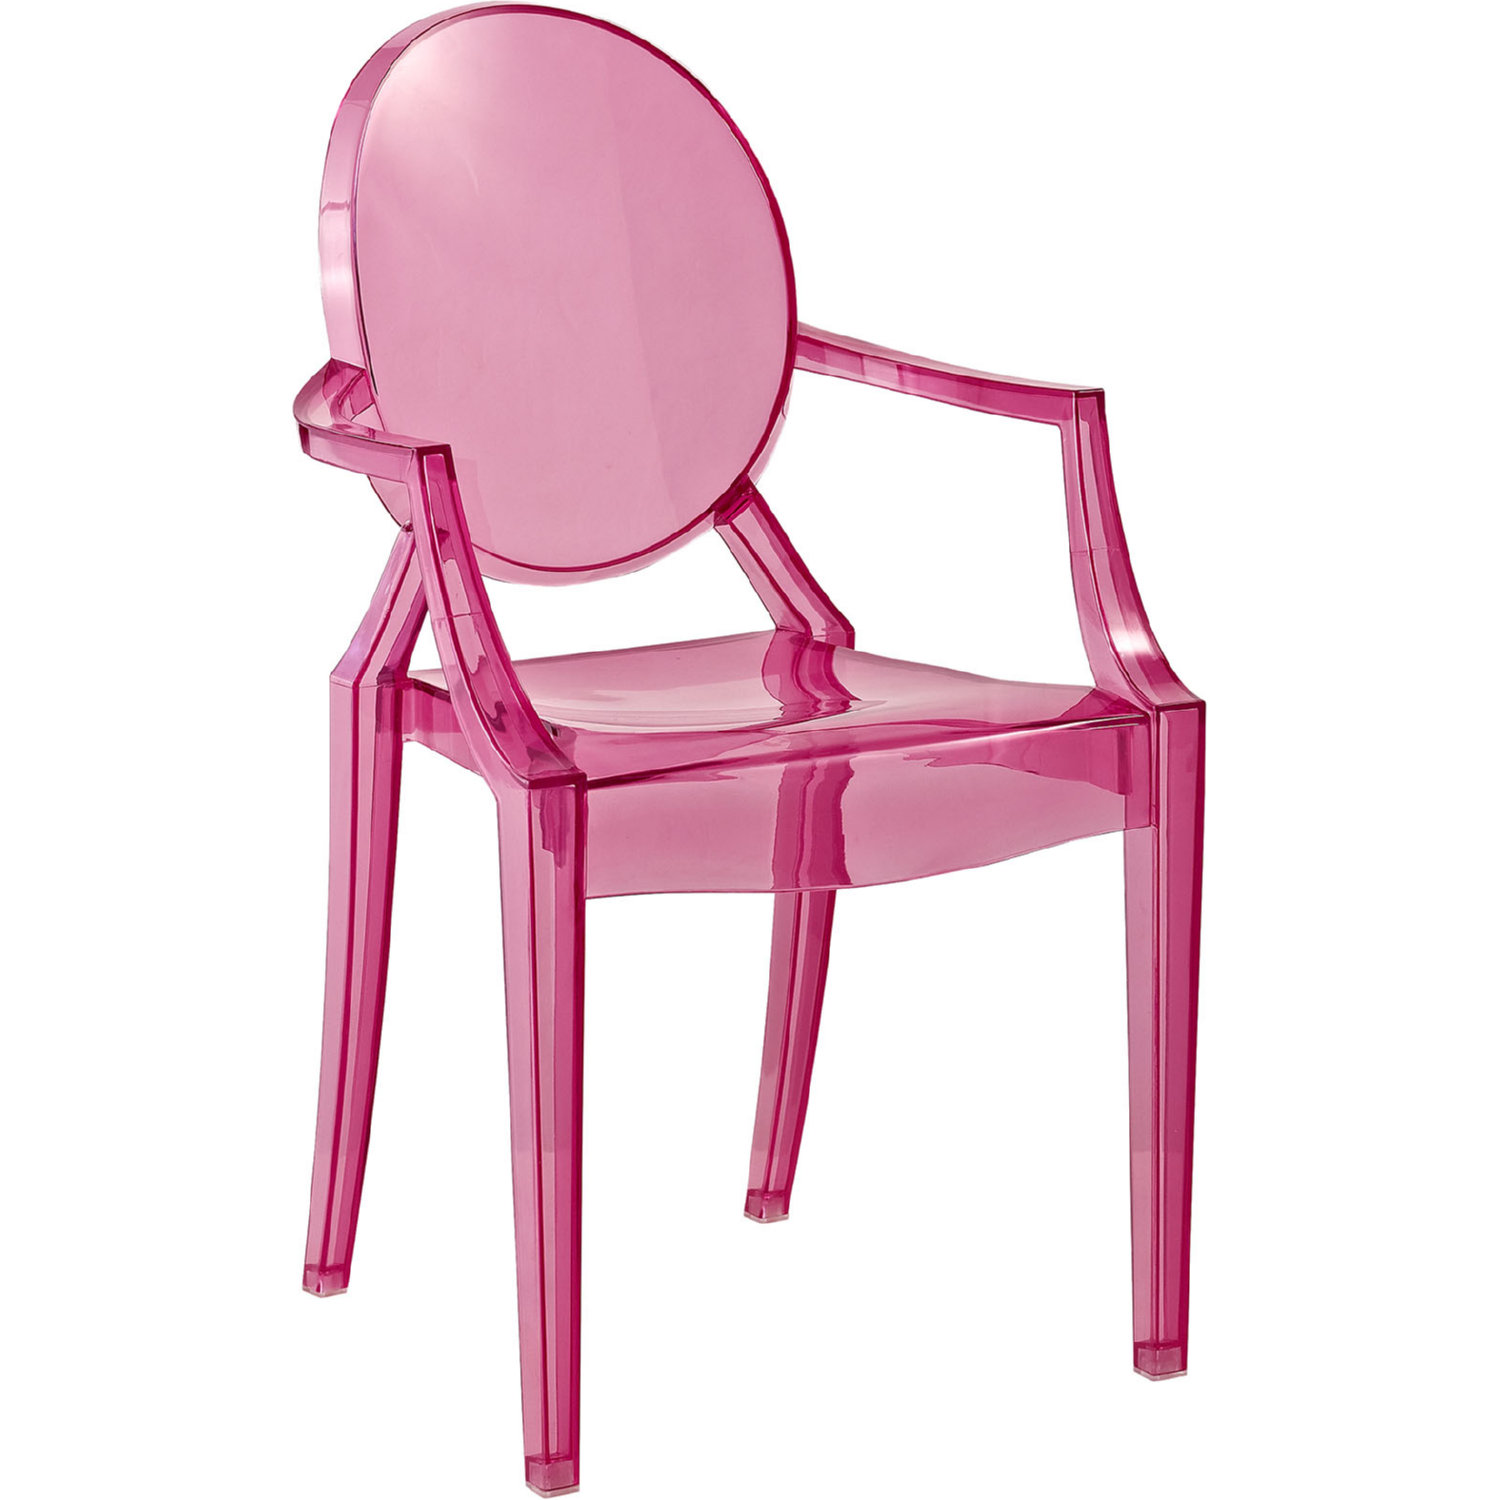 clear chair target rolling dining chairs modway eei 121k pnk casper kids in pink polycarbonate